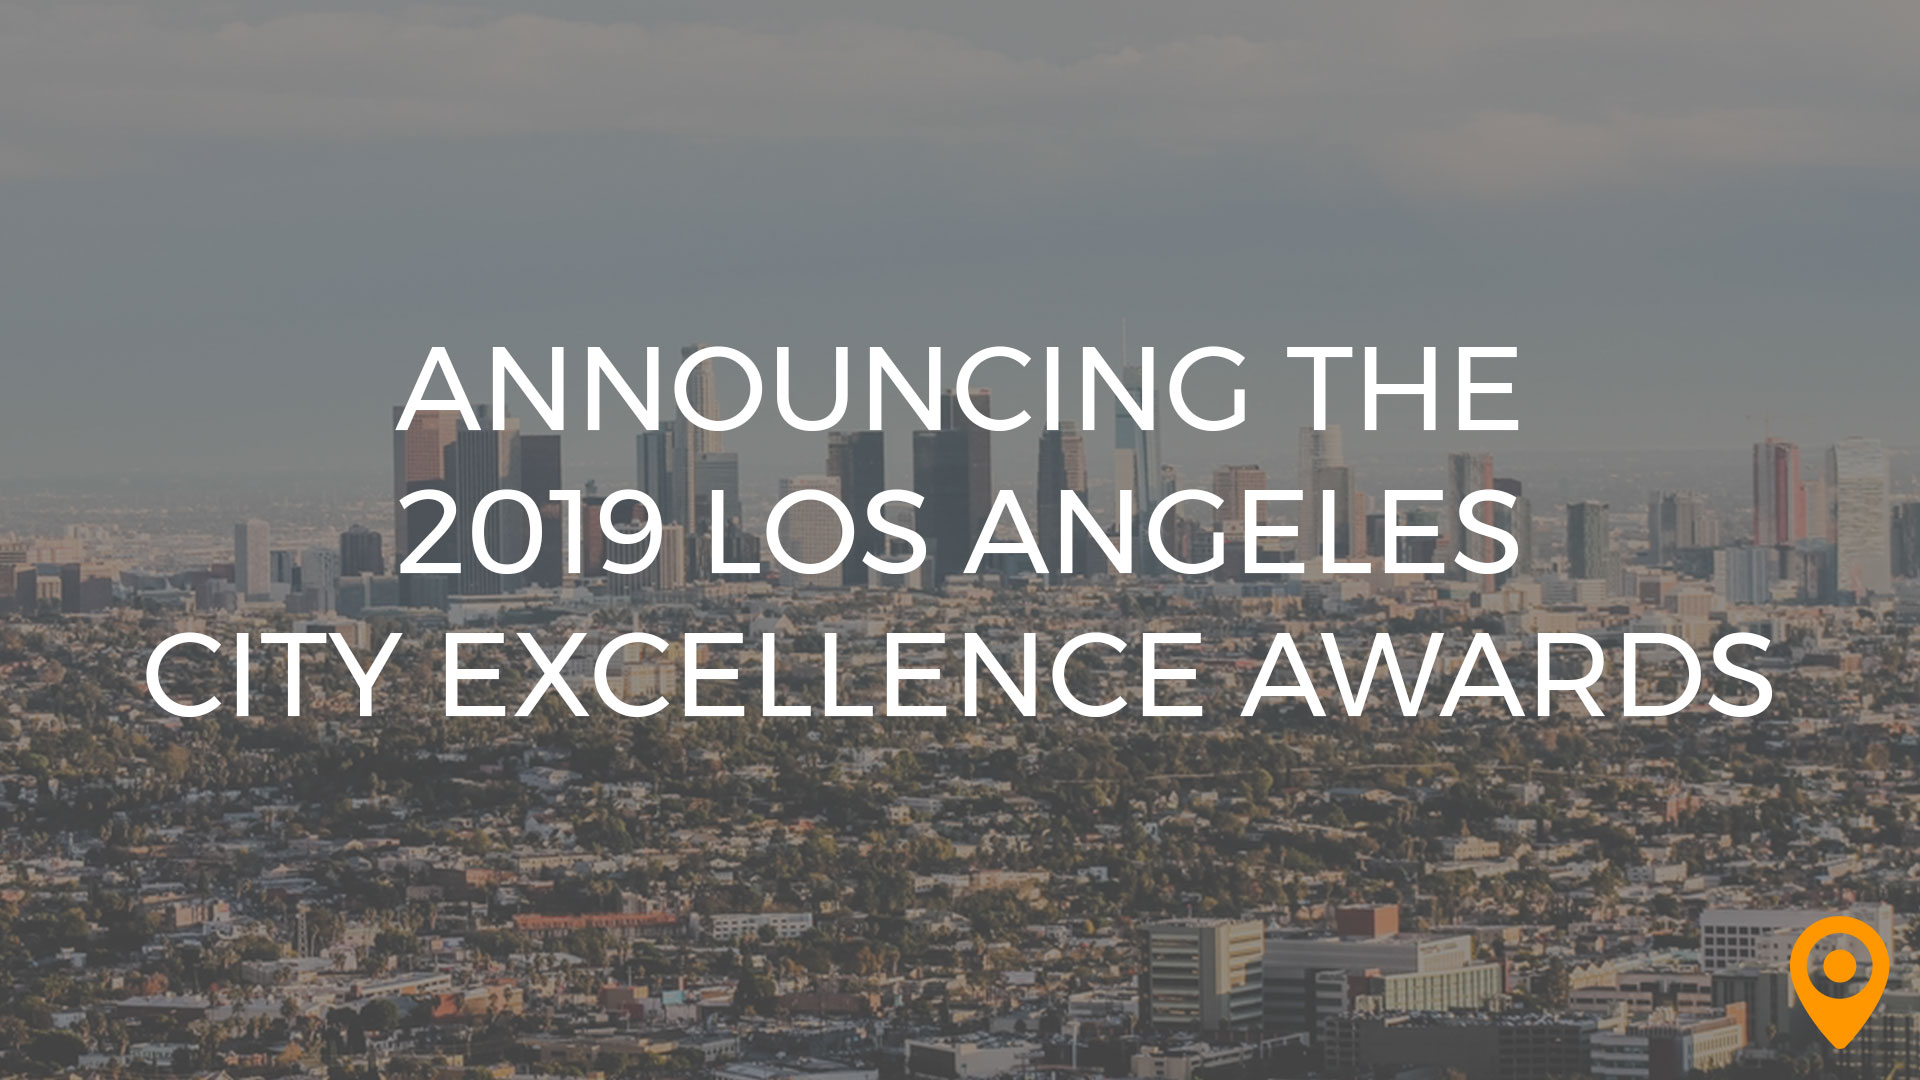 Announcing the 2019 Los Angeles City Excellence Awards!   UpCity